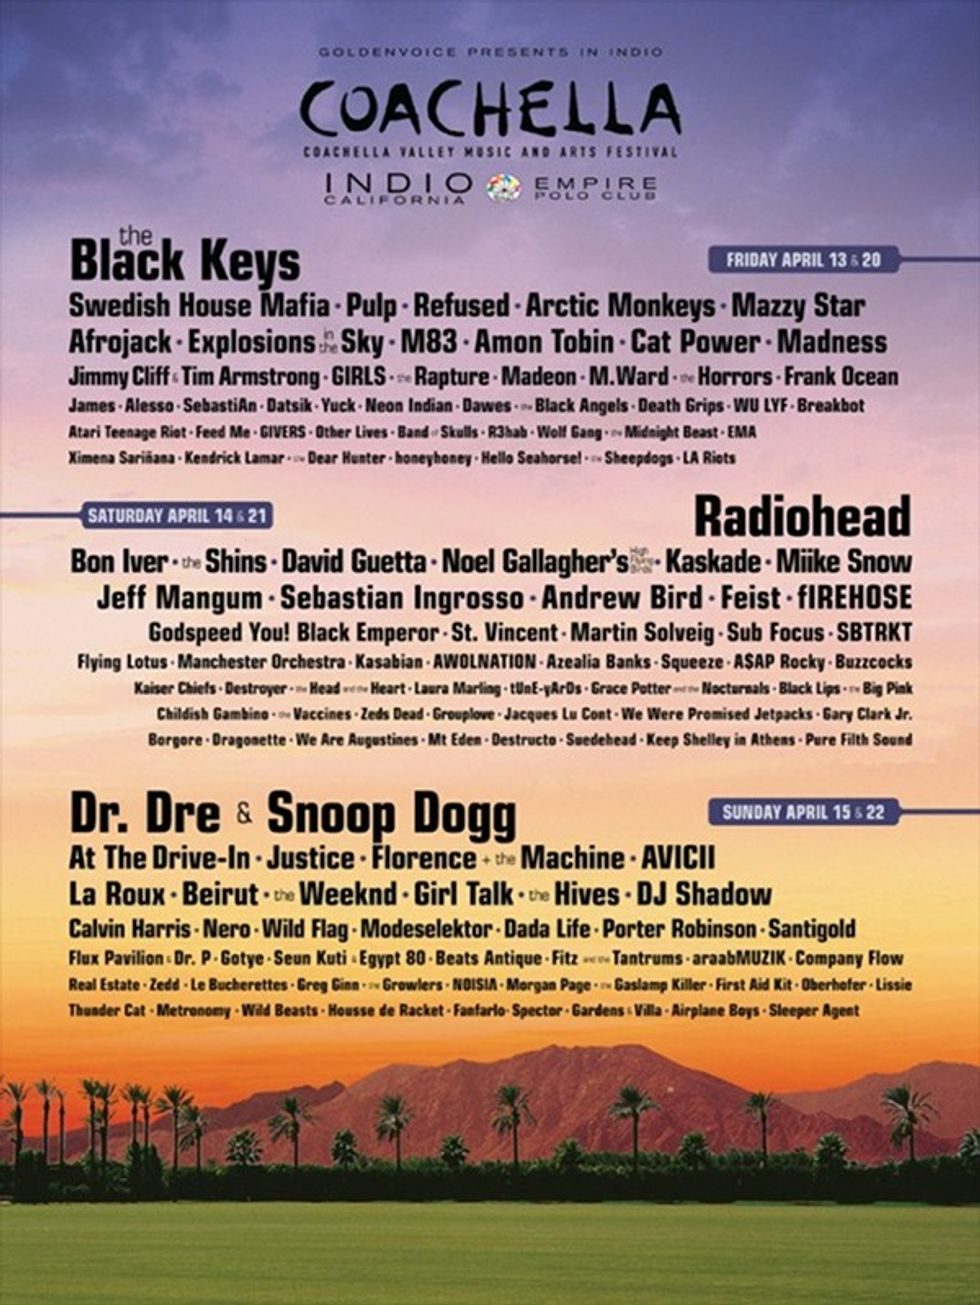 Coachella 2012 Lineup Announced -- the Black Keys, Radiohead, Dr. Dre & Snoop Dogg Headline